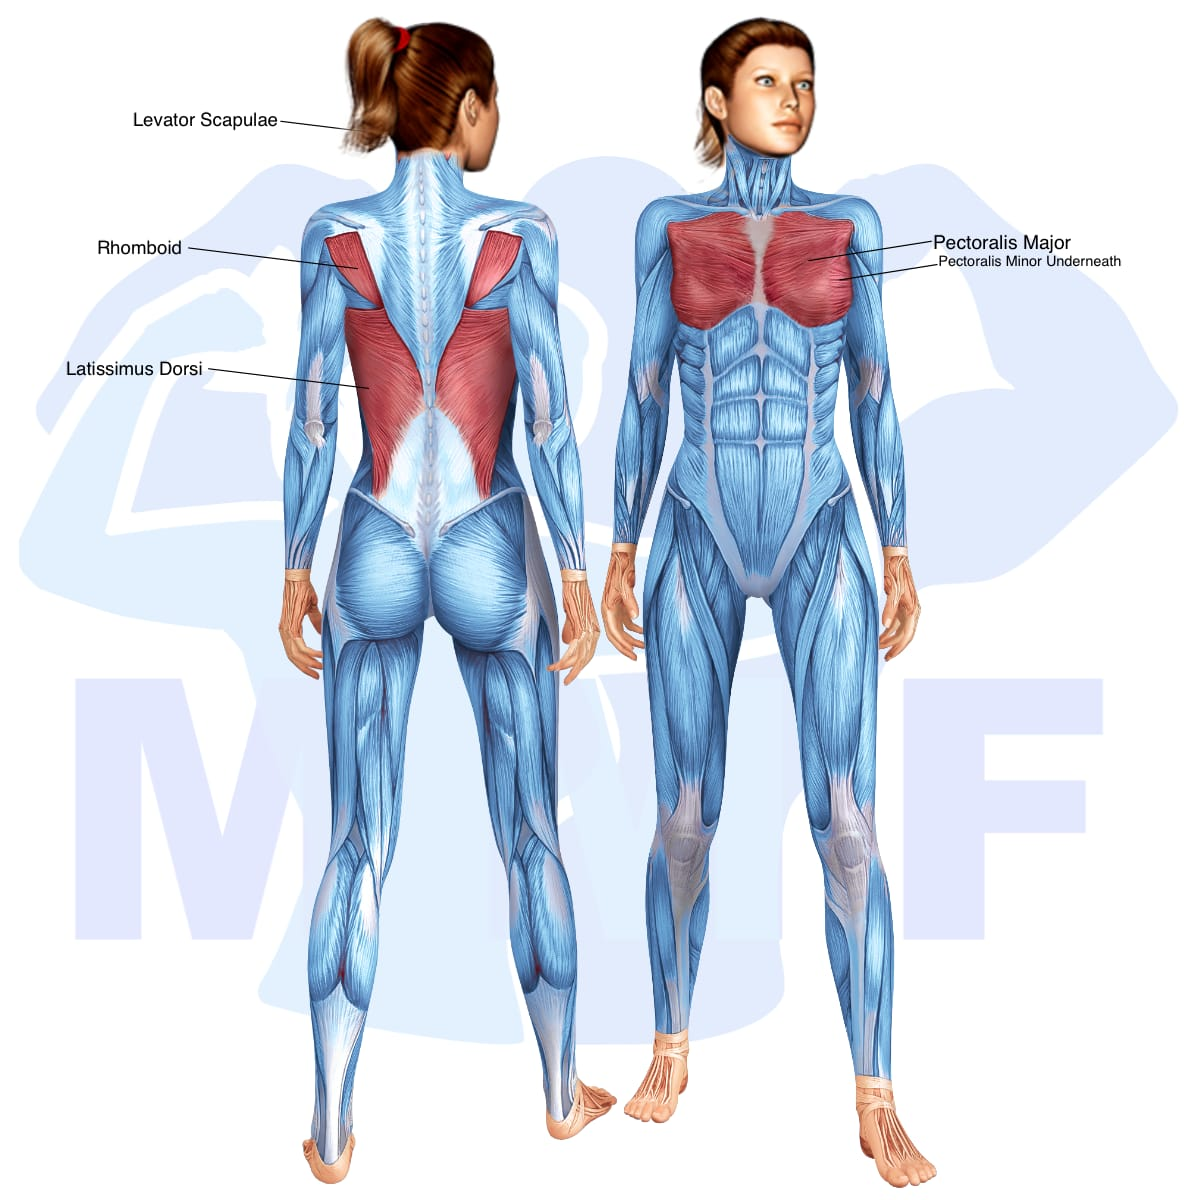 Skeletal muscle systems for a muscular woman, with muscles highlighted in red that are use during resistance band flys.